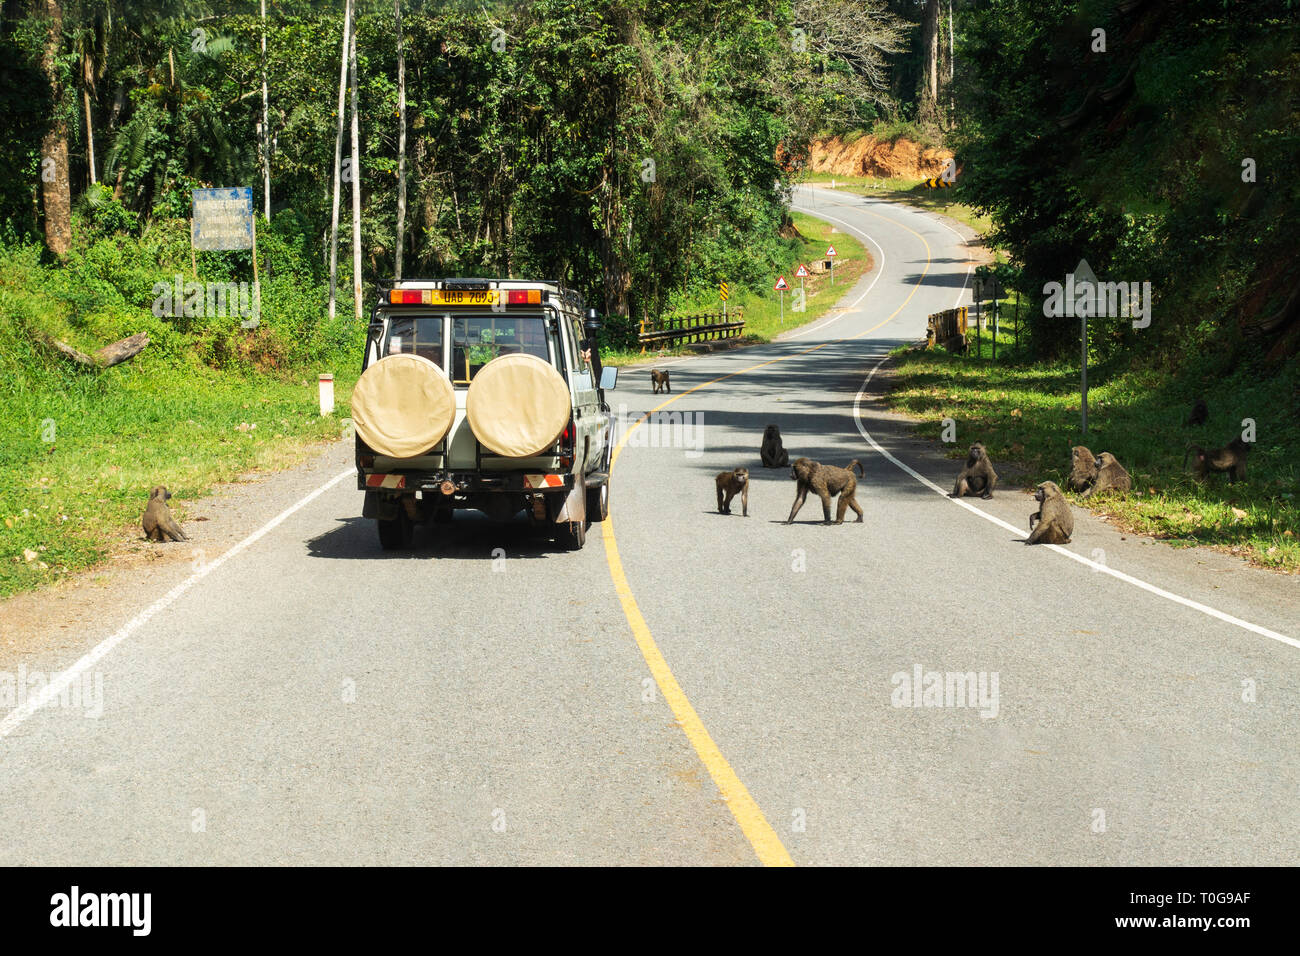 A passing tourist vehicle attracts a troupe of olive baboons (Papio anubis) in Kibale Forest National Park, South West Uganda, East Africa - Stock Image